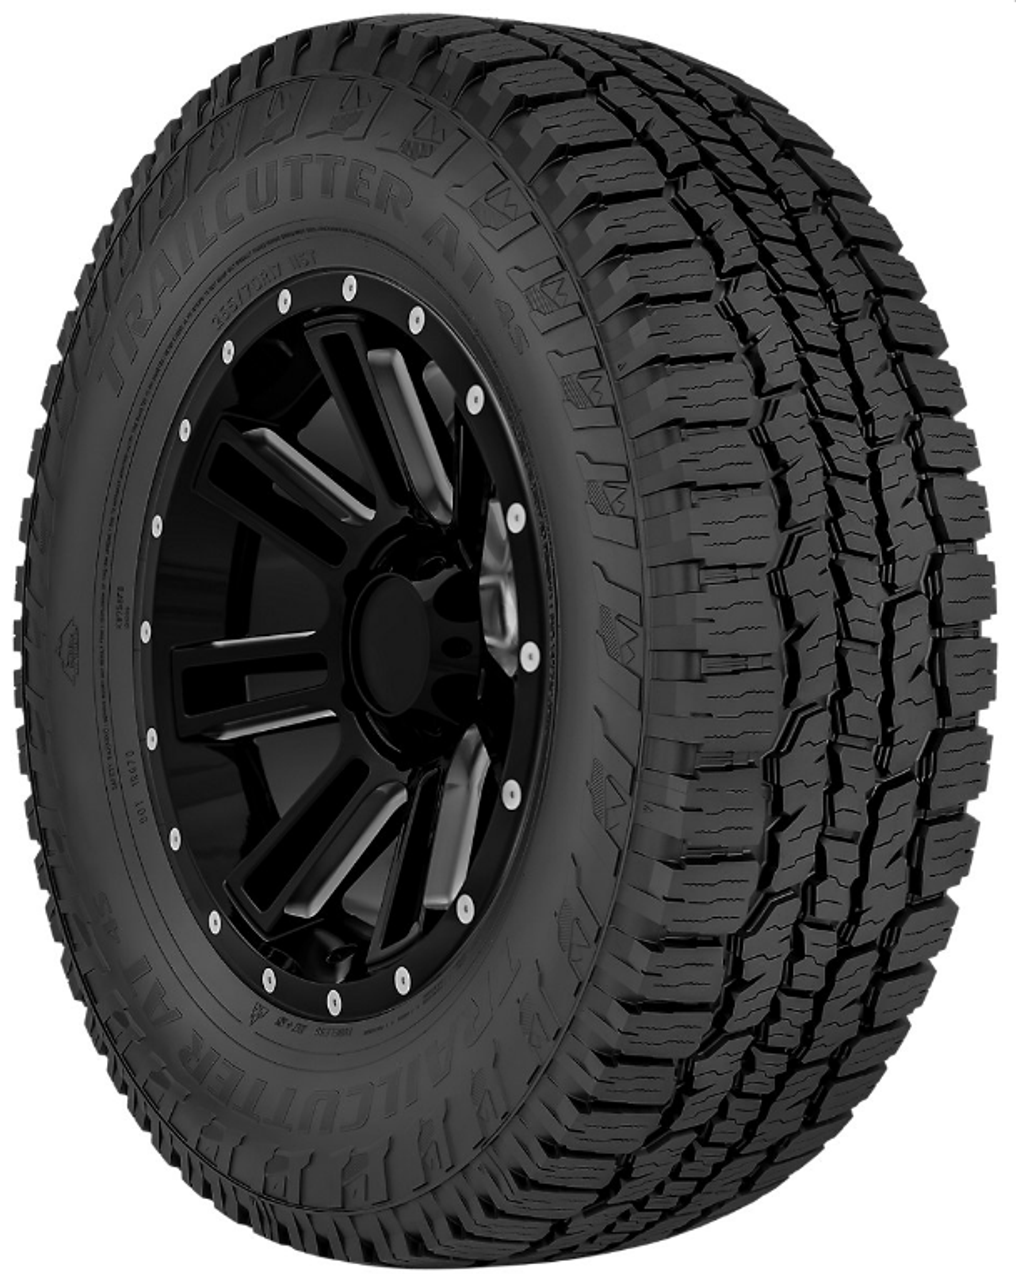 325 65 18 Delta Trailcutter AT 4S 10 Ply New Tire 55,000 Miles LT325/65R18 33.3""